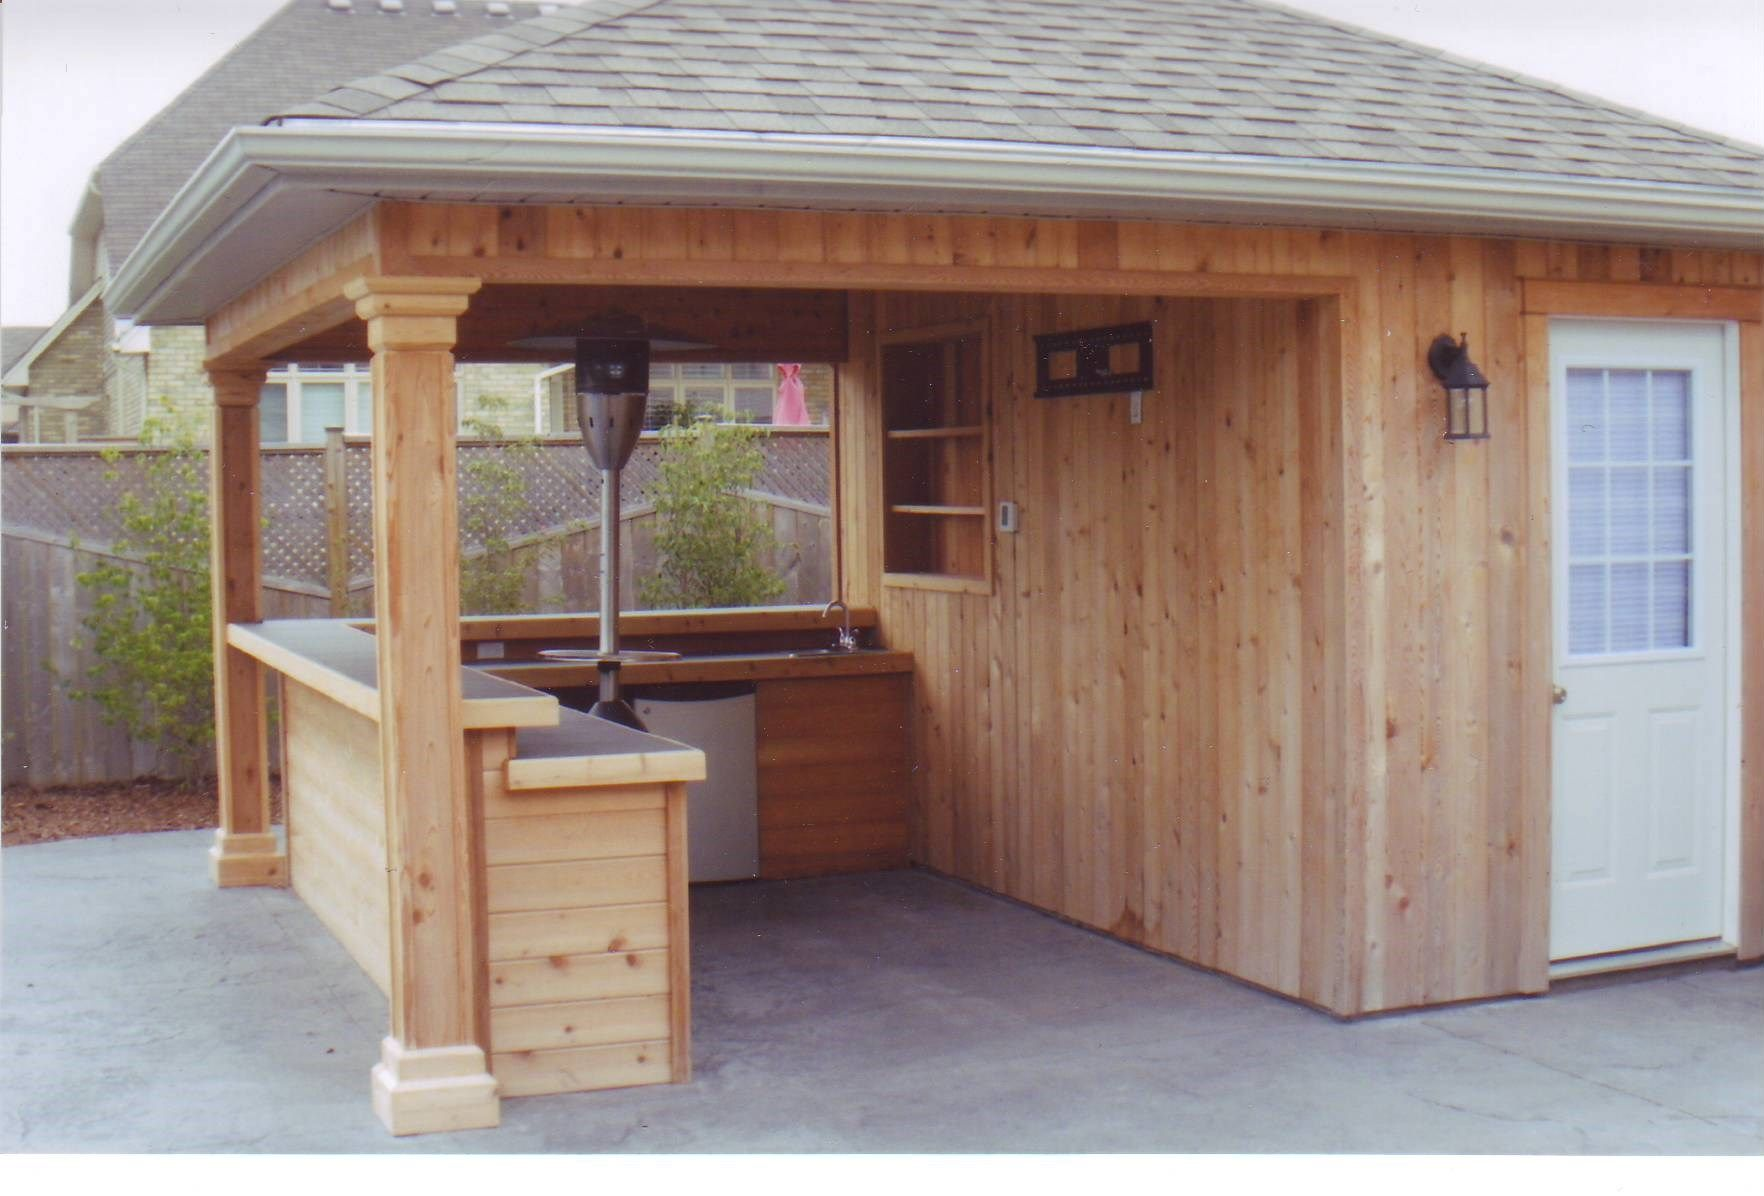 Free shed plans 8x12 shed 8x10 shed lean to tool shed for Pool shed plans free